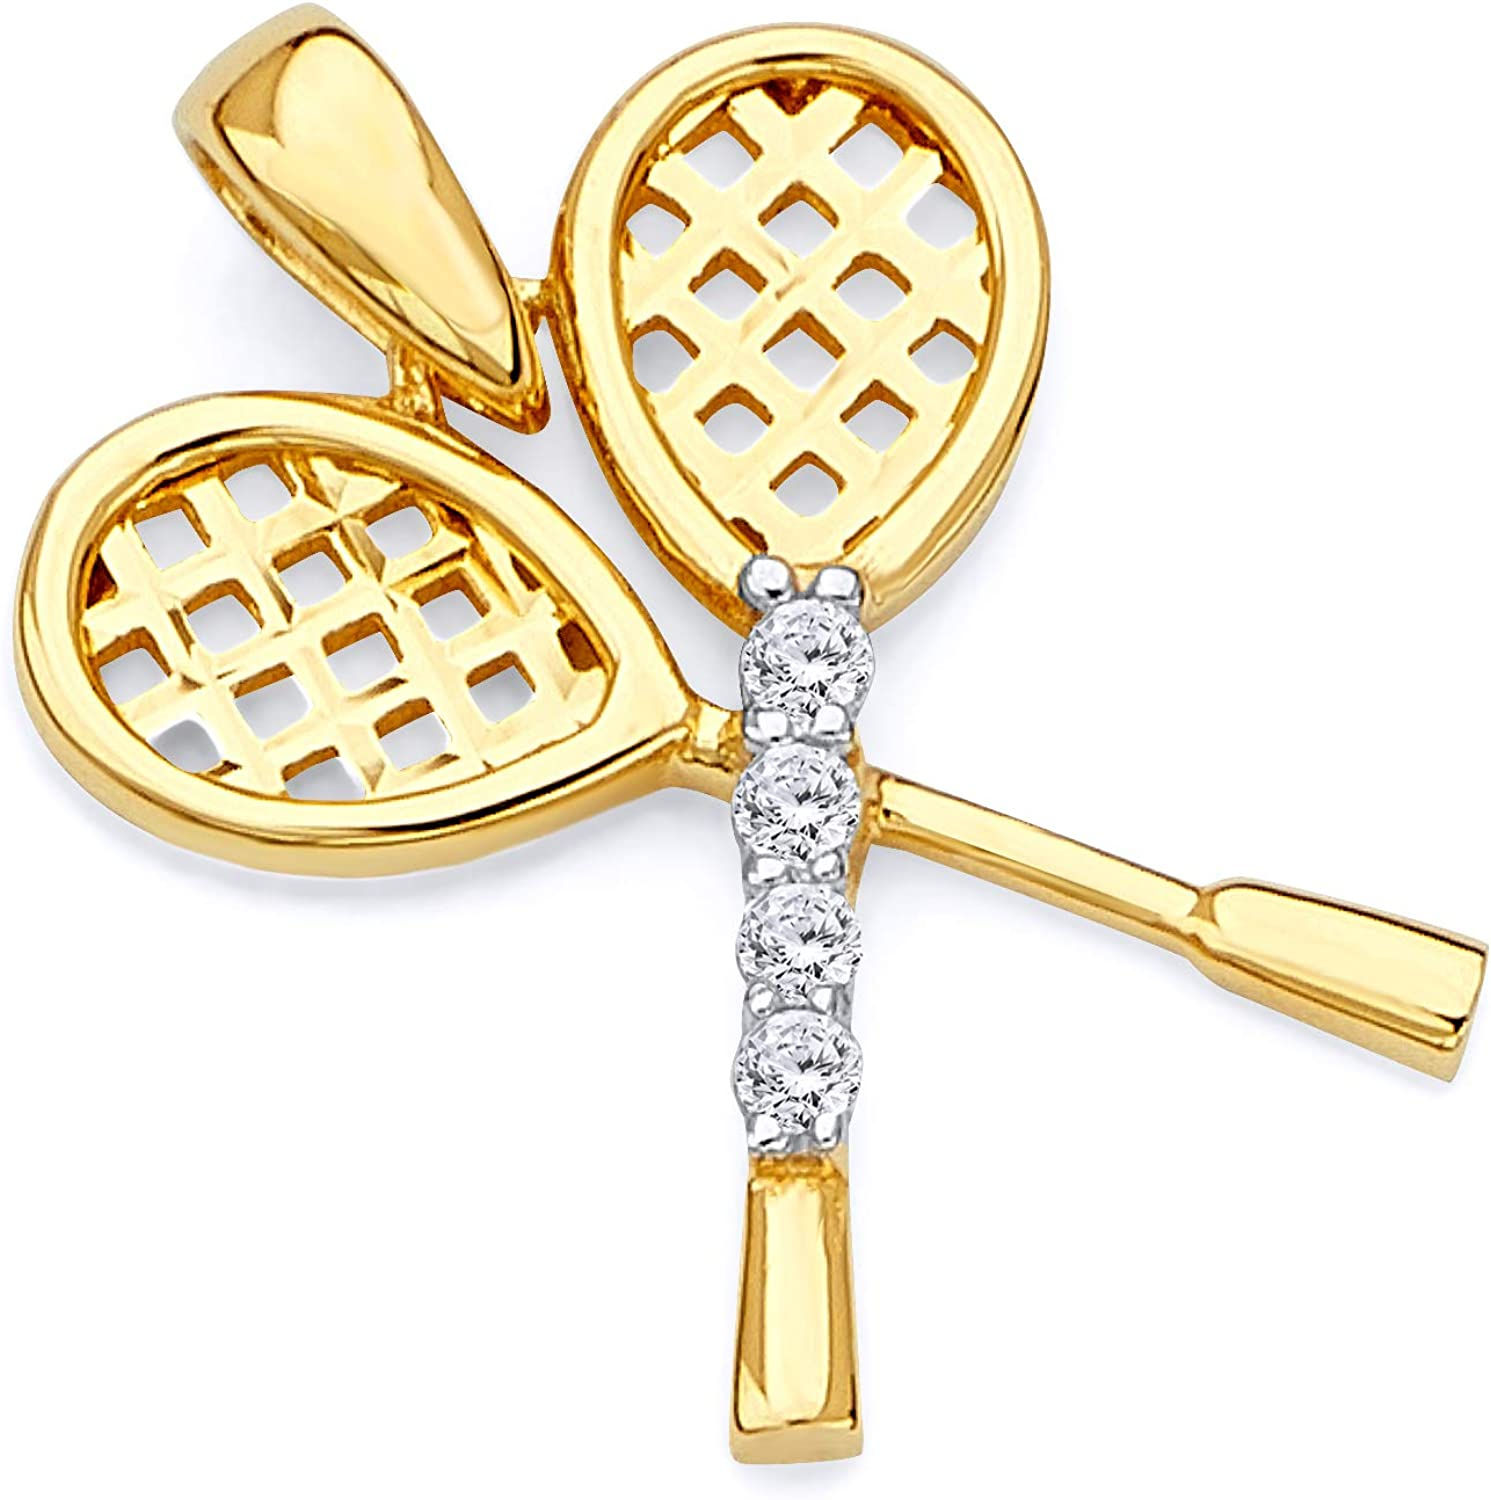 14k REAL Two Tone Gold Tennis Racket Charm Pendant